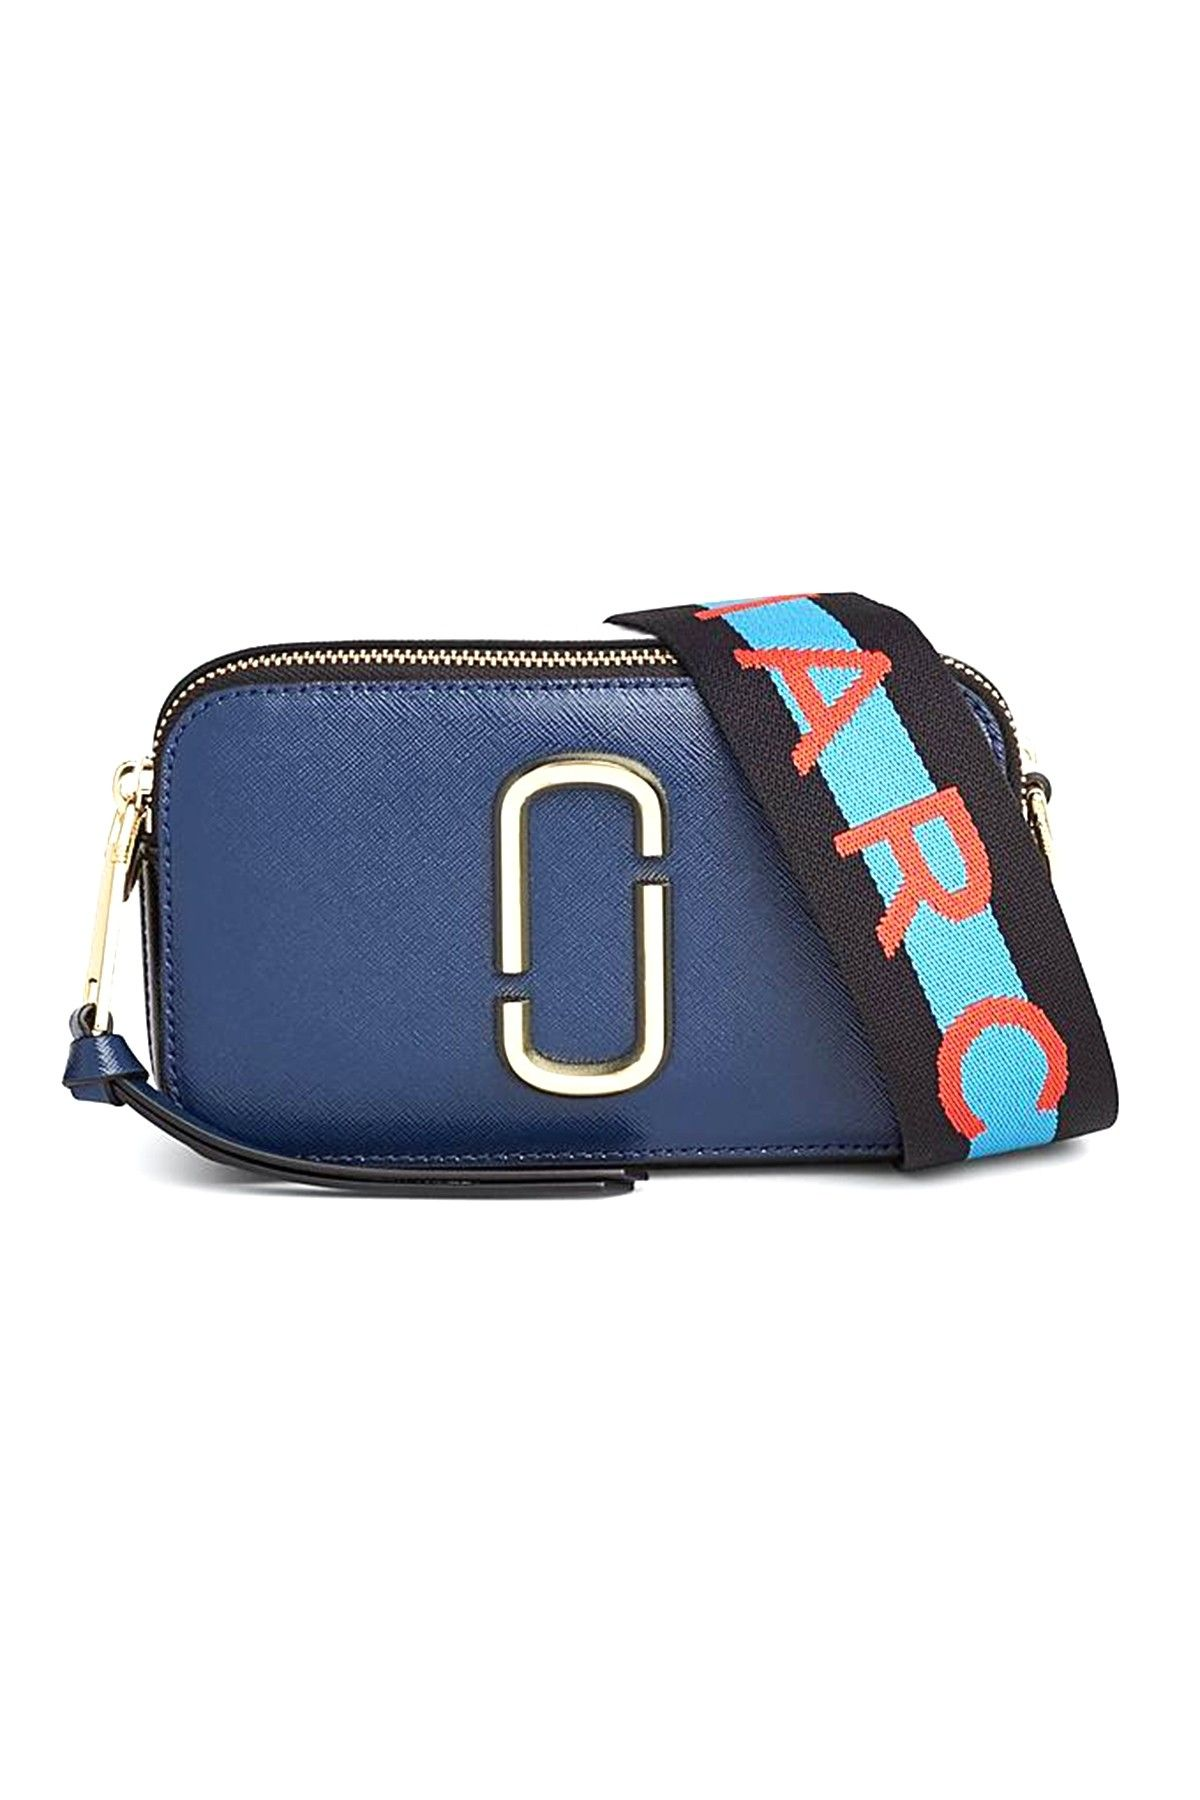 fc967bc80 Marc Jacobs Snapshot Bag in Blue Sea Multi | Hampden Bags in 2019 ...